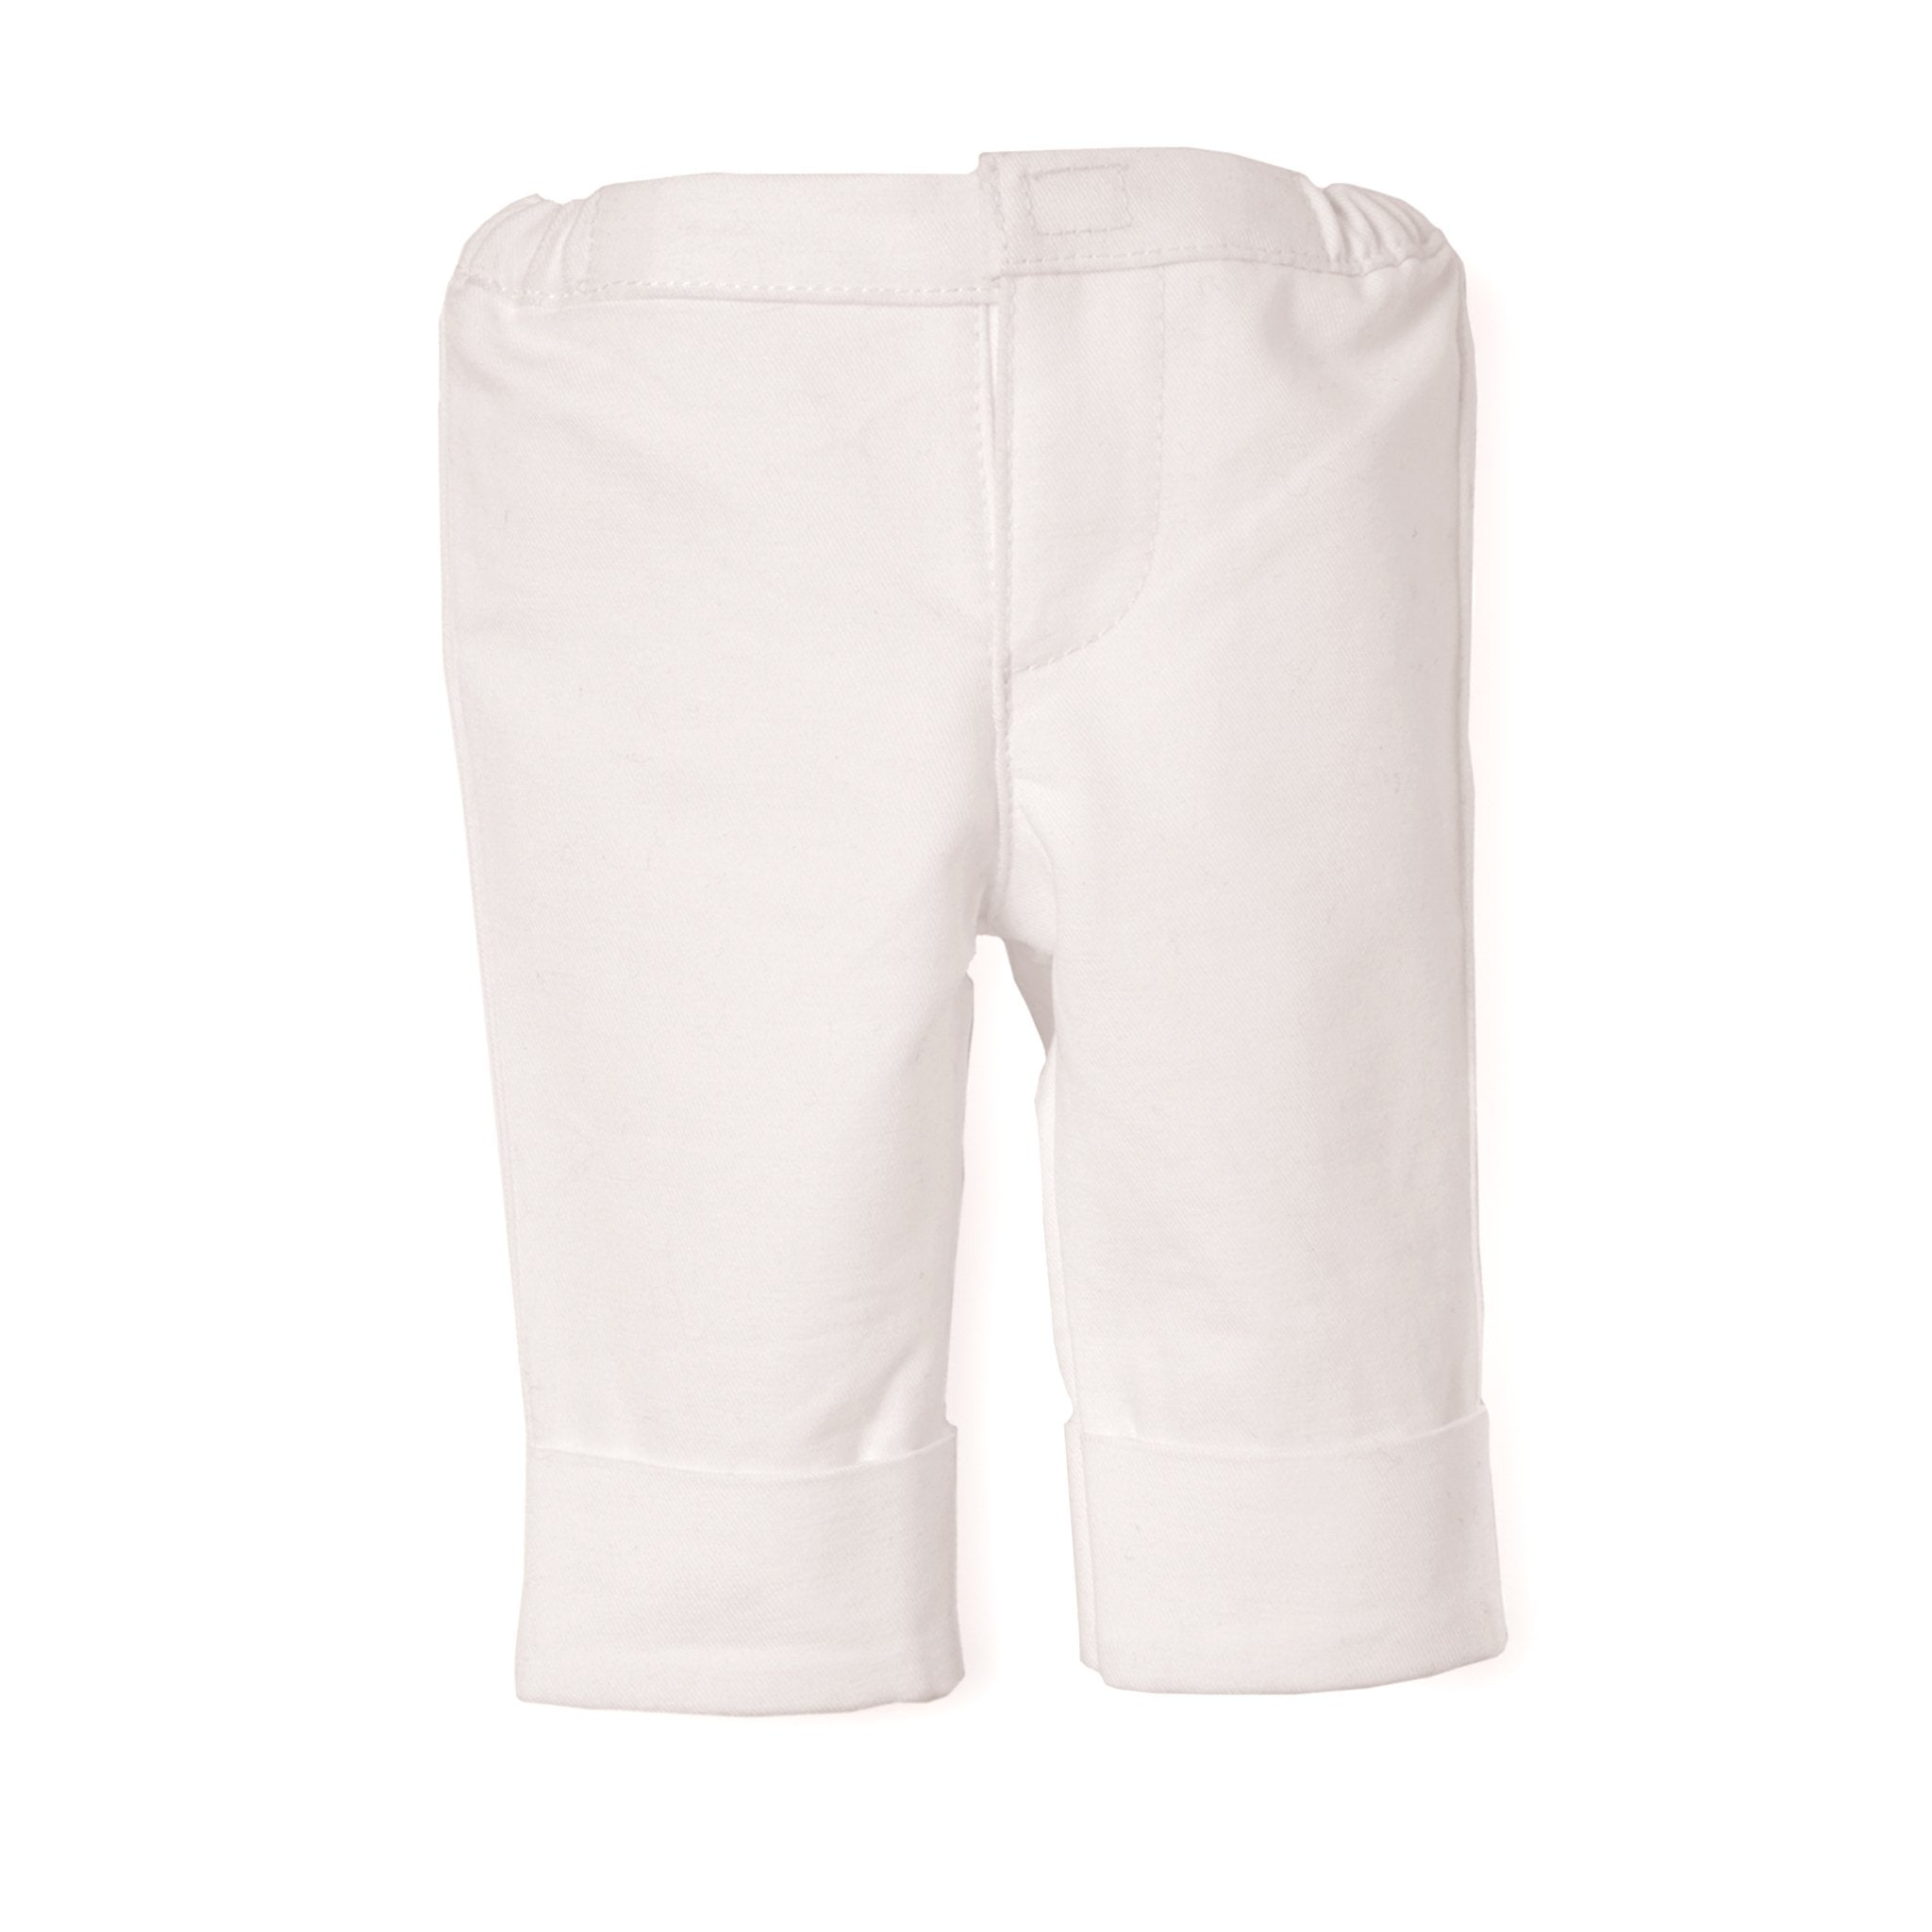 Rose of hearts white capri pants fits all 18 inch dolls.